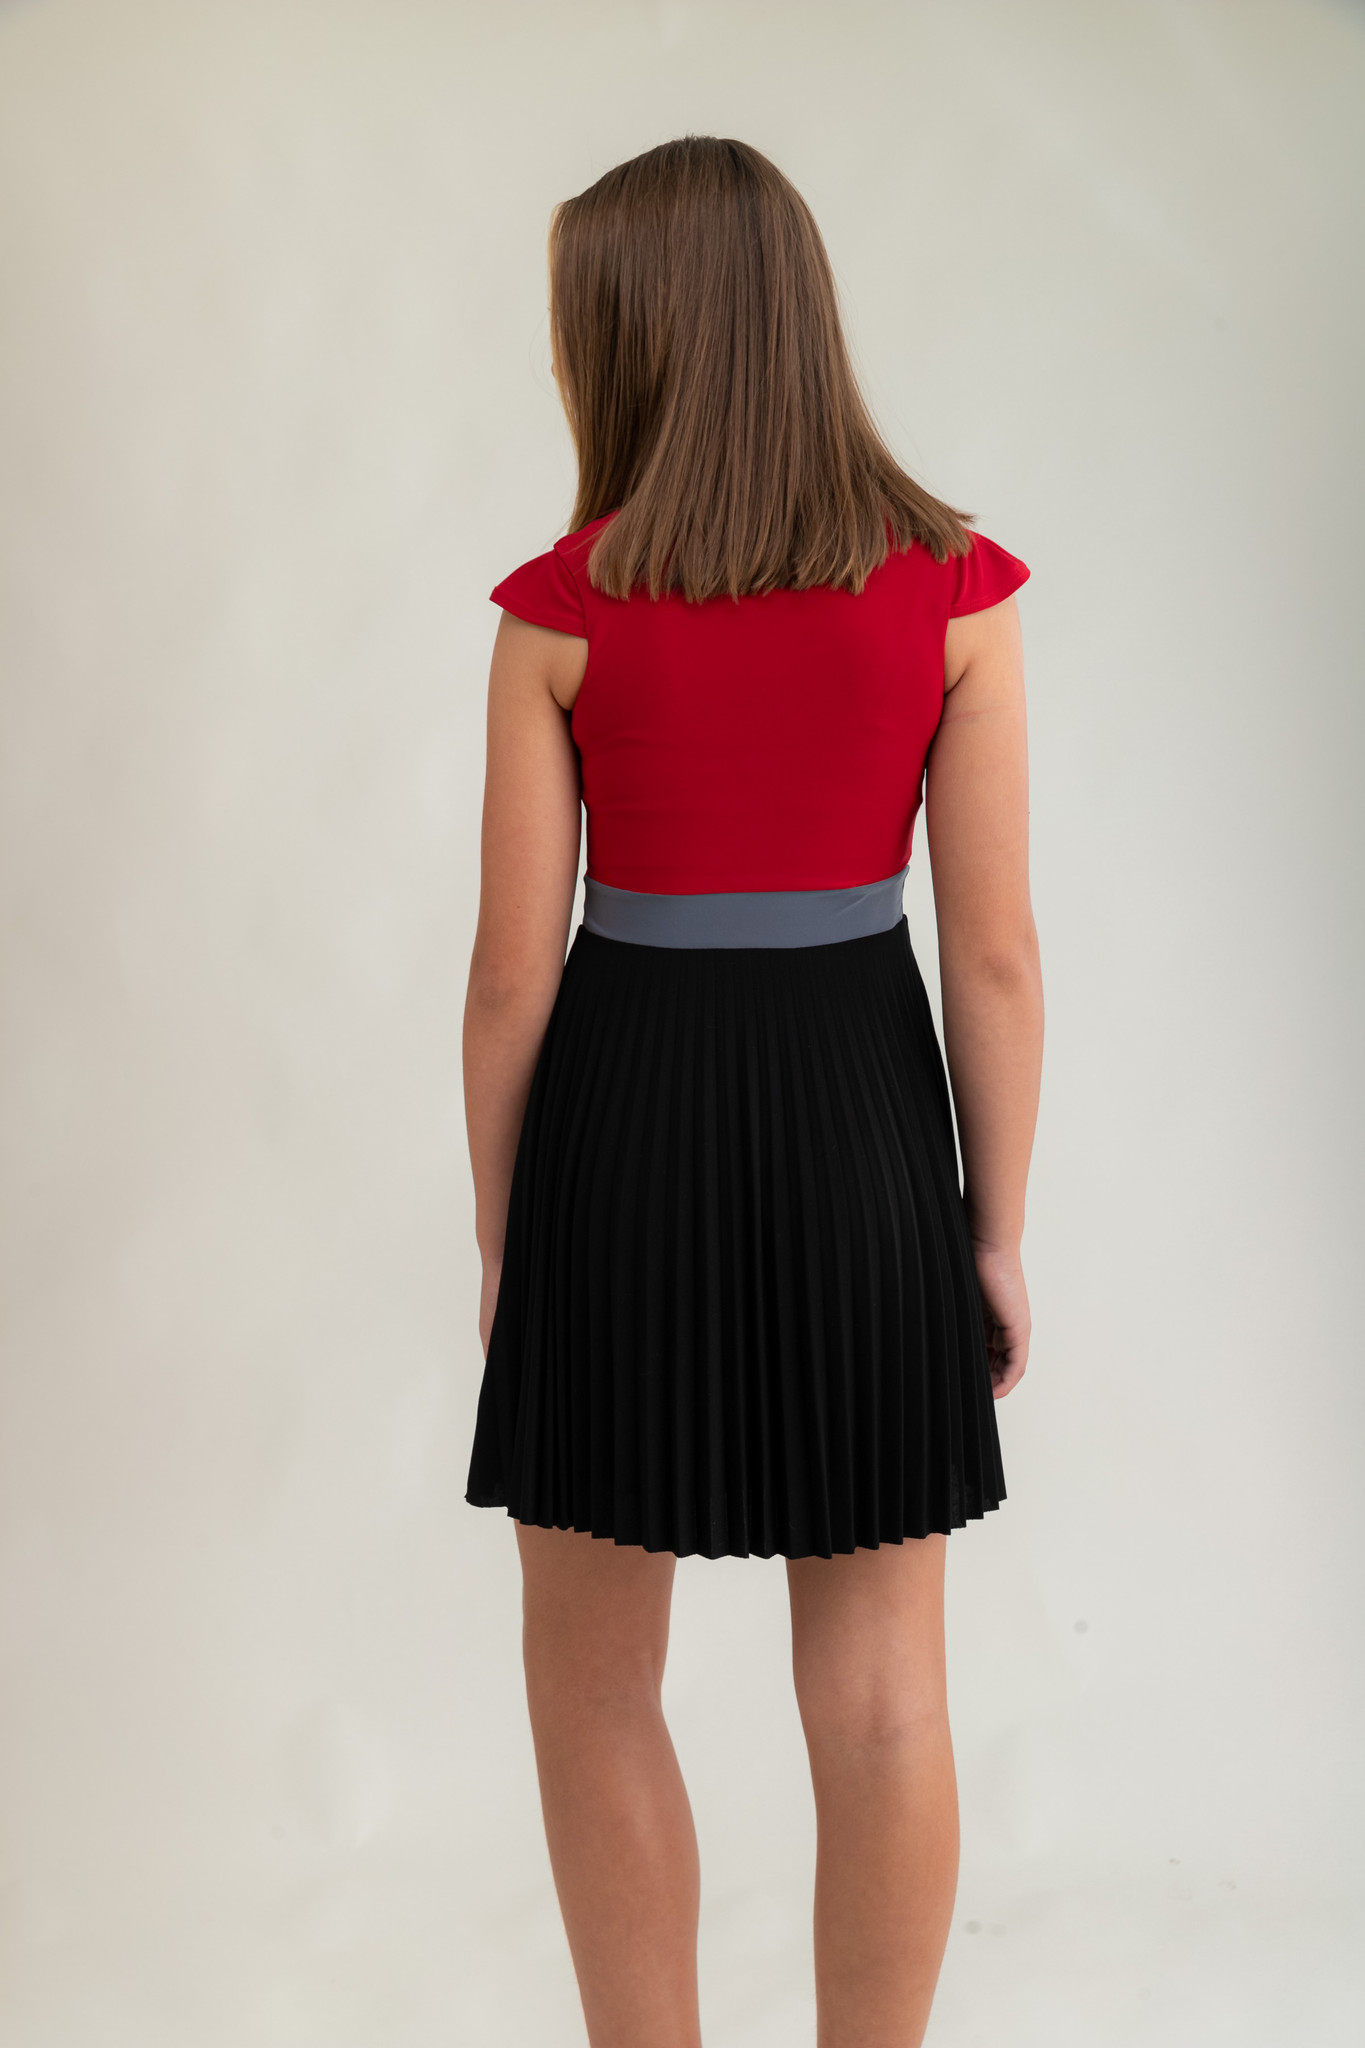 Tween Girls Pleated Red Color-Block Dress with Cap Sleeve back view.